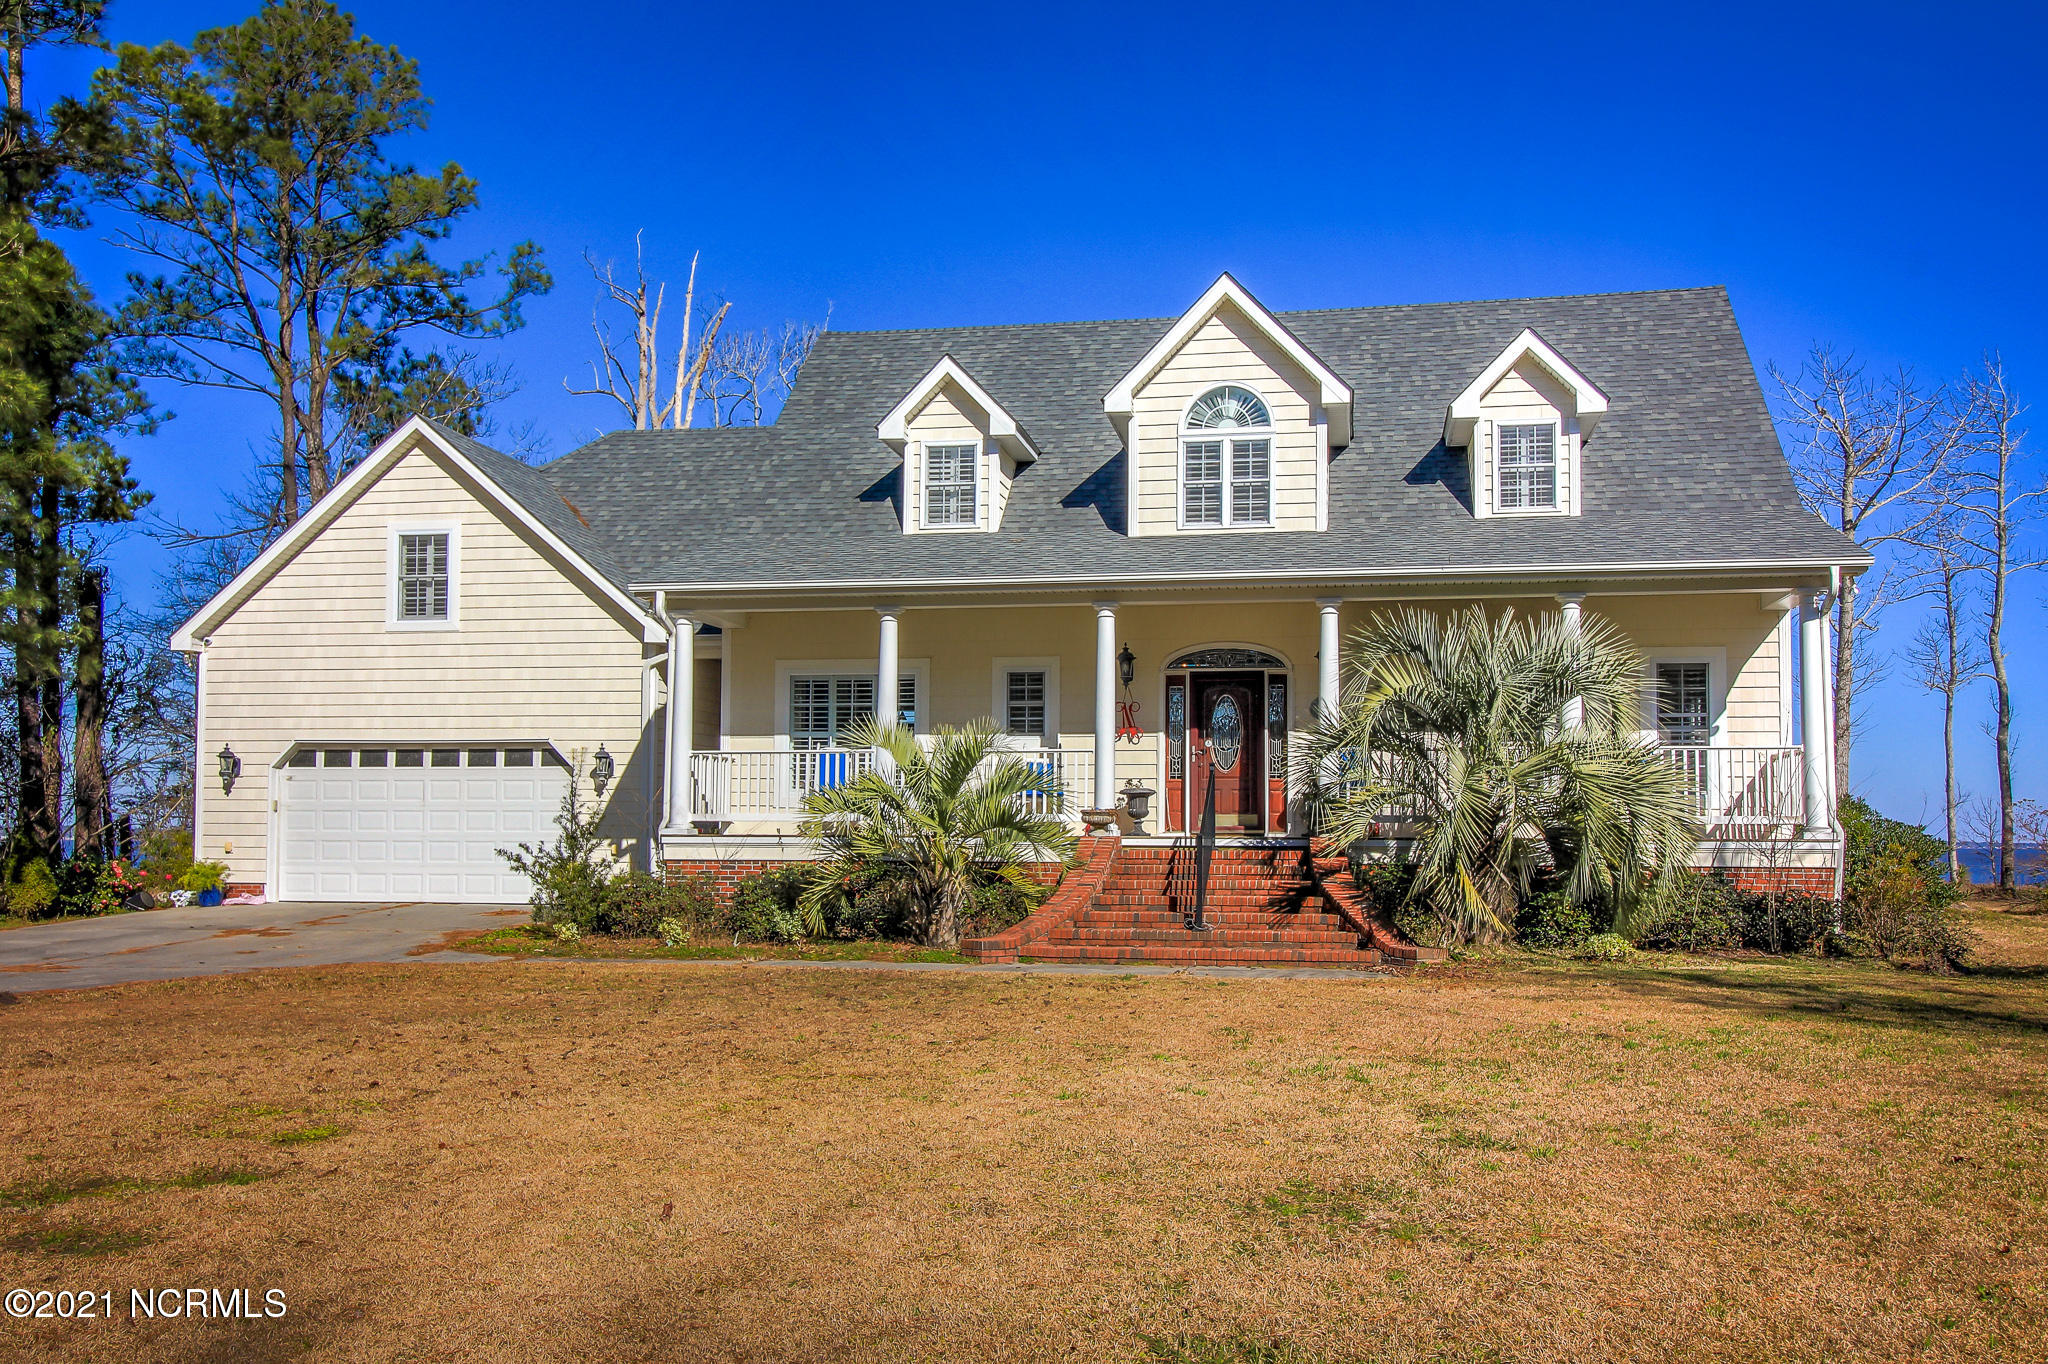 125 King Creek Drive, Havelock, North Carolina 28532, 3 Bedrooms Bedrooms, 10 Rooms Rooms,2 BathroomsBathrooms,Single family residence,For sale,King Creek,100200330